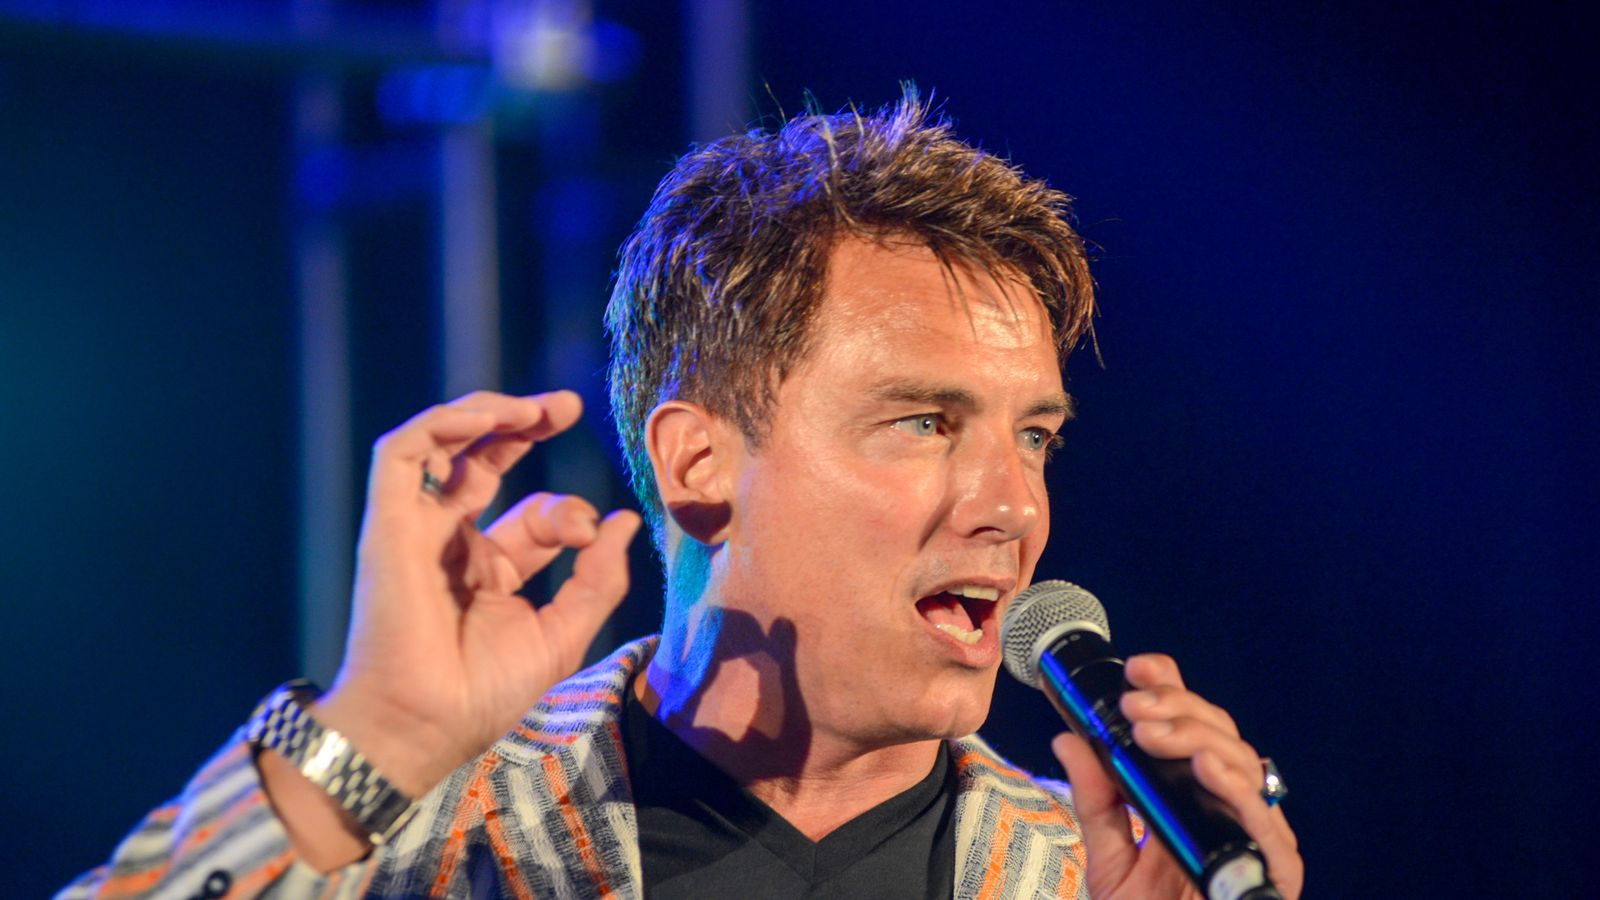 John Barrowman rushed to hospital with severe neck injury